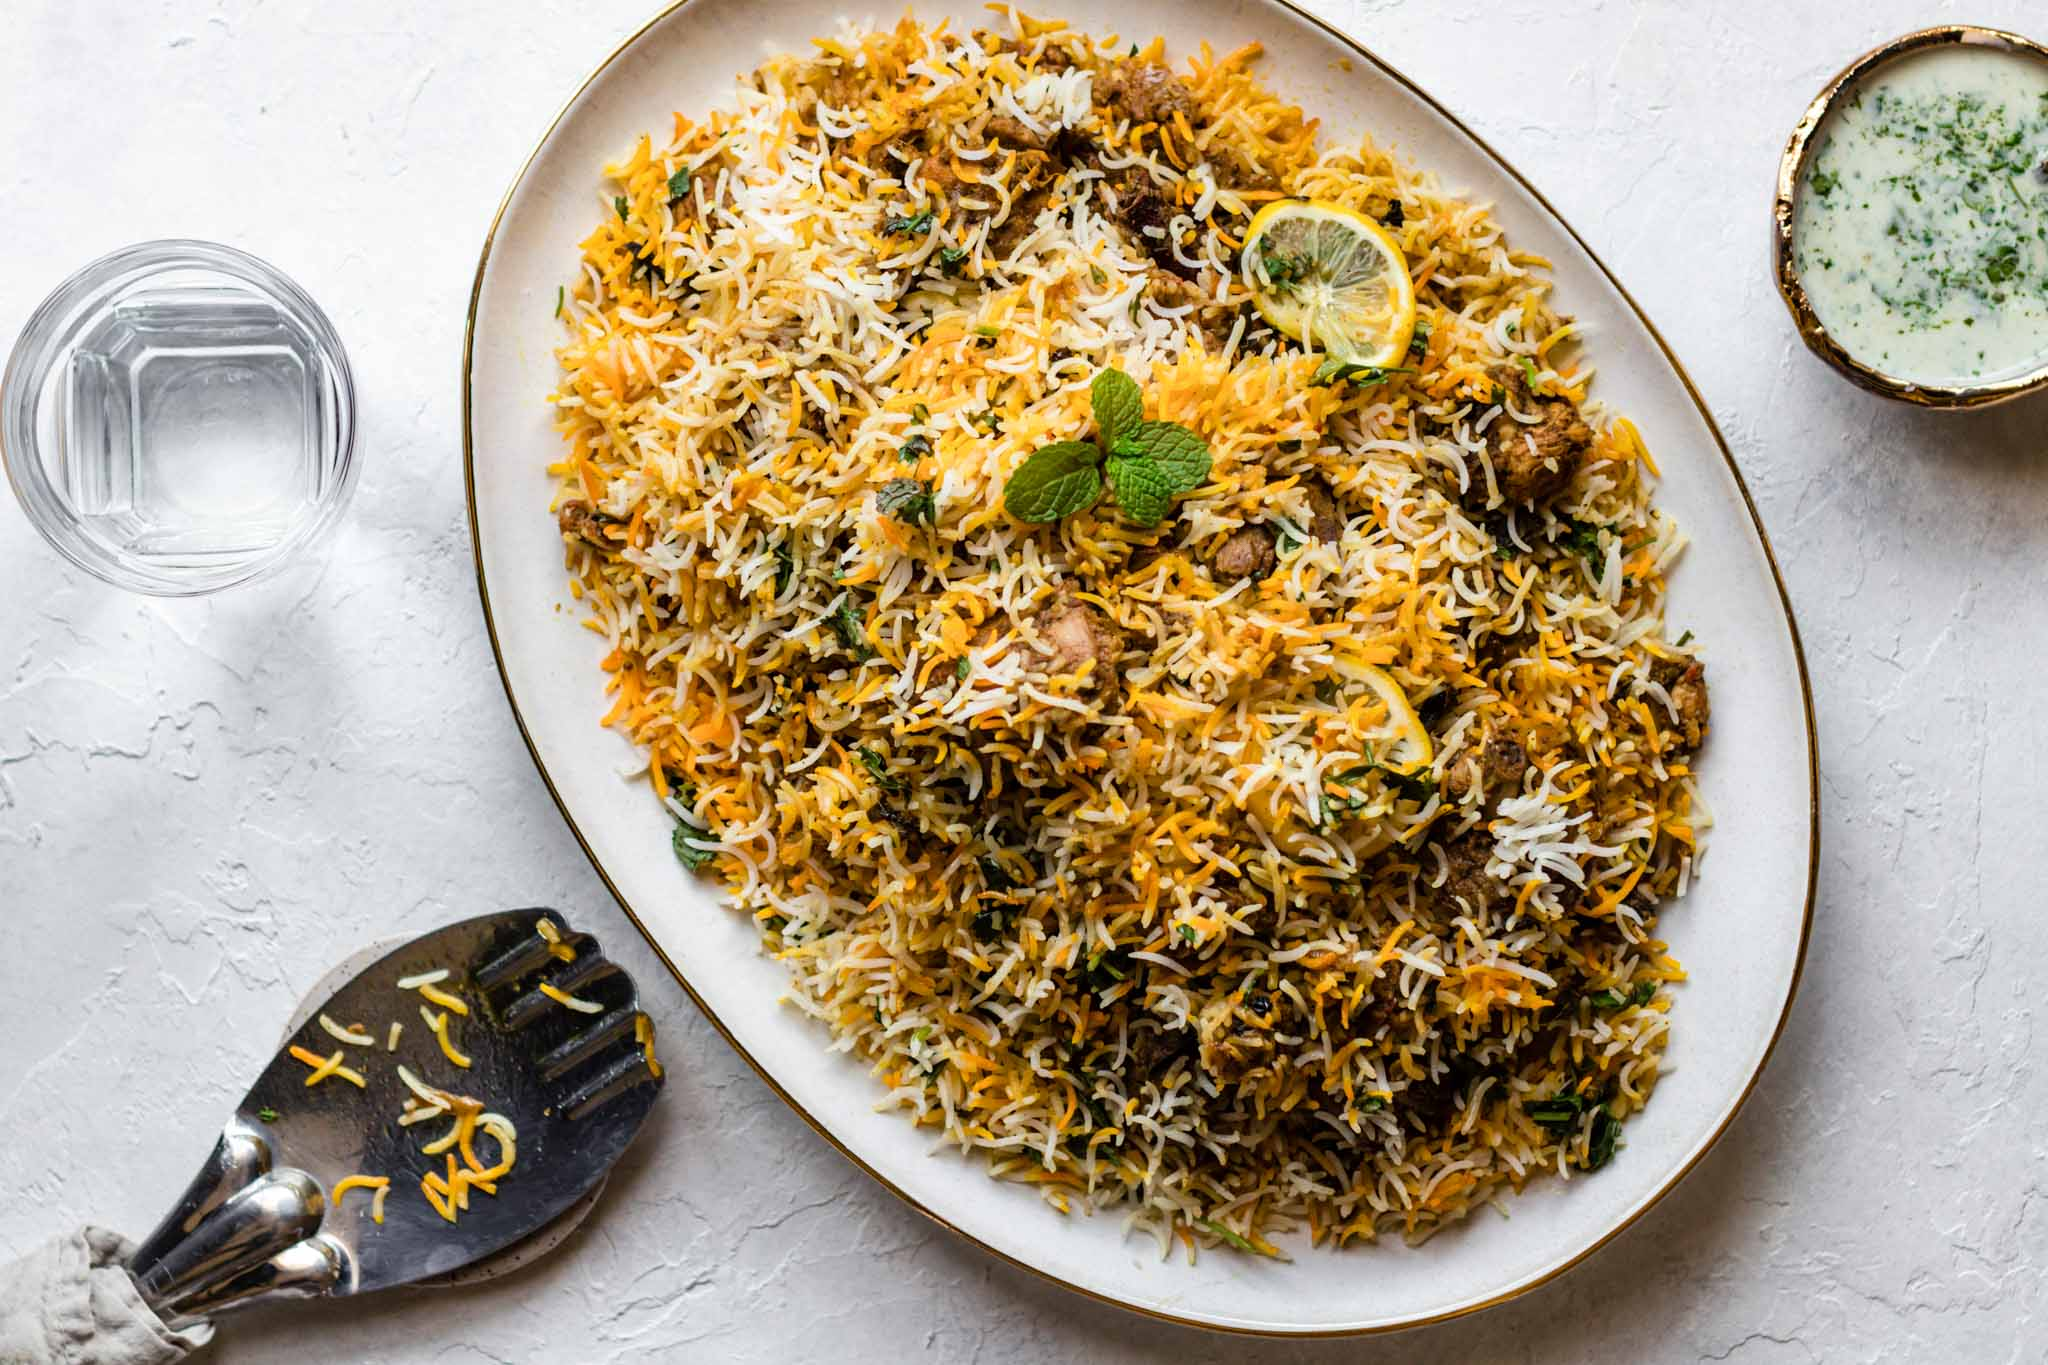 Chicken Biryani on a large platter with a rice spoon, a glass of water, and yogurt raita on the side